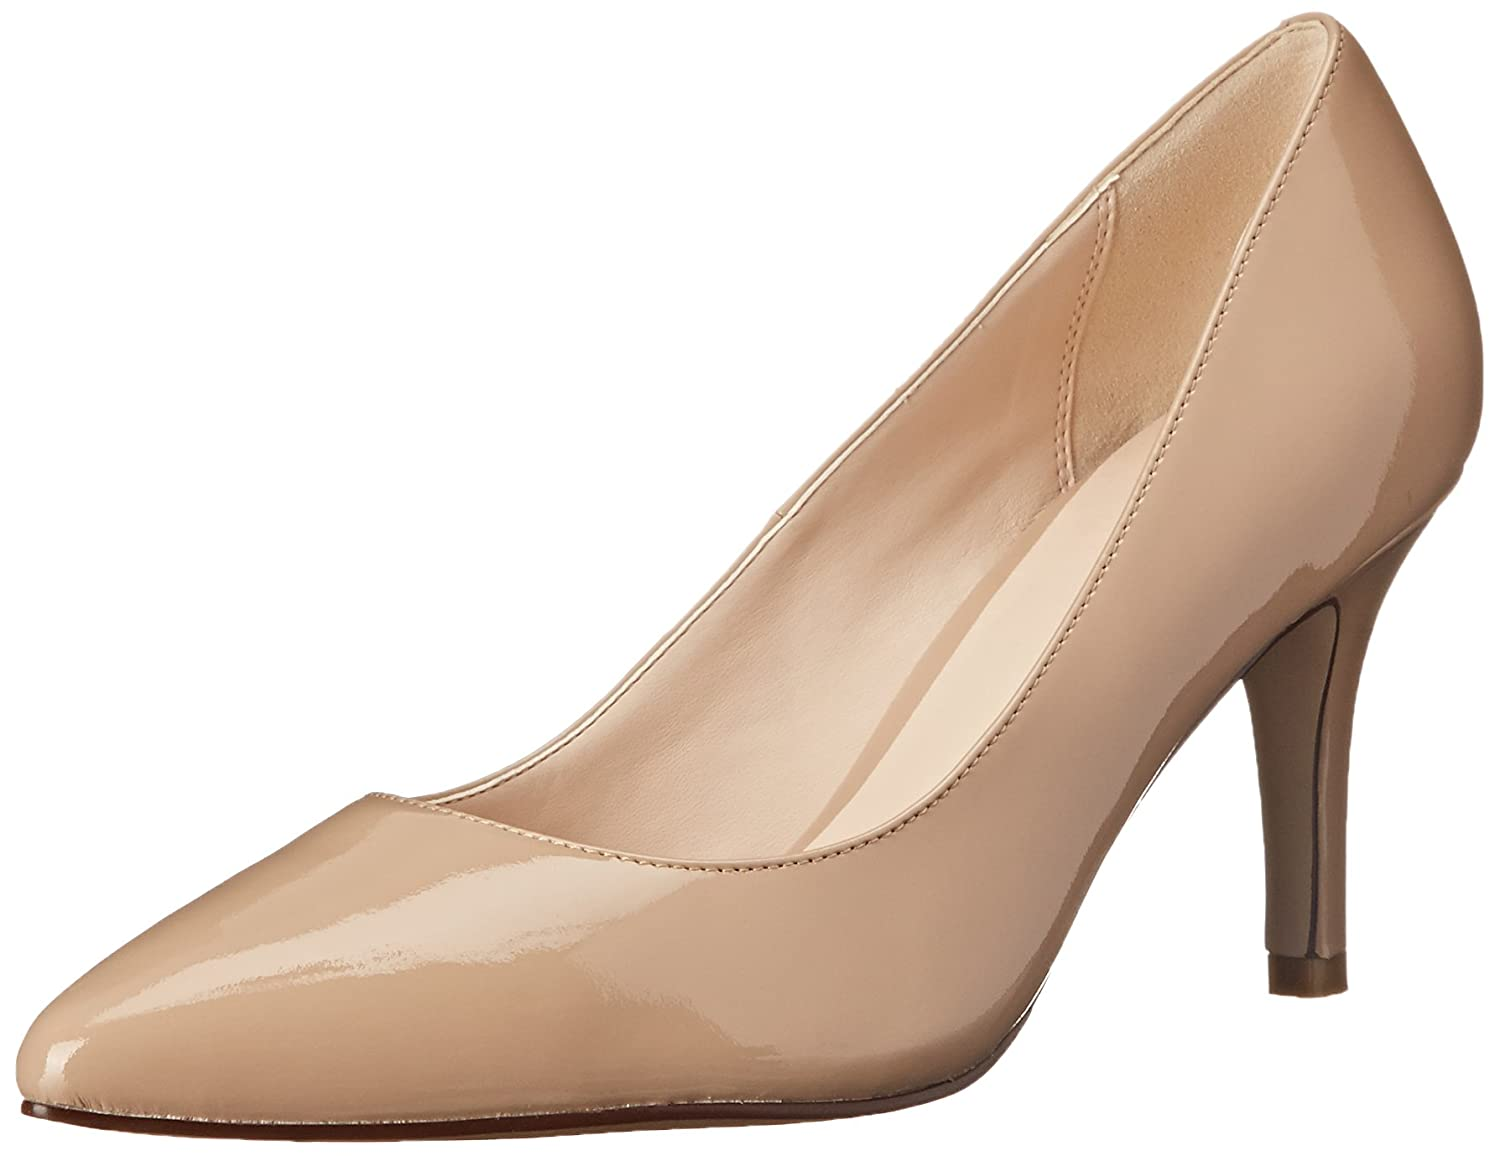 Cole Haan Women's Juliana 75 Dress Pump B0059SA346 6 C US|Maple Sugar Patent